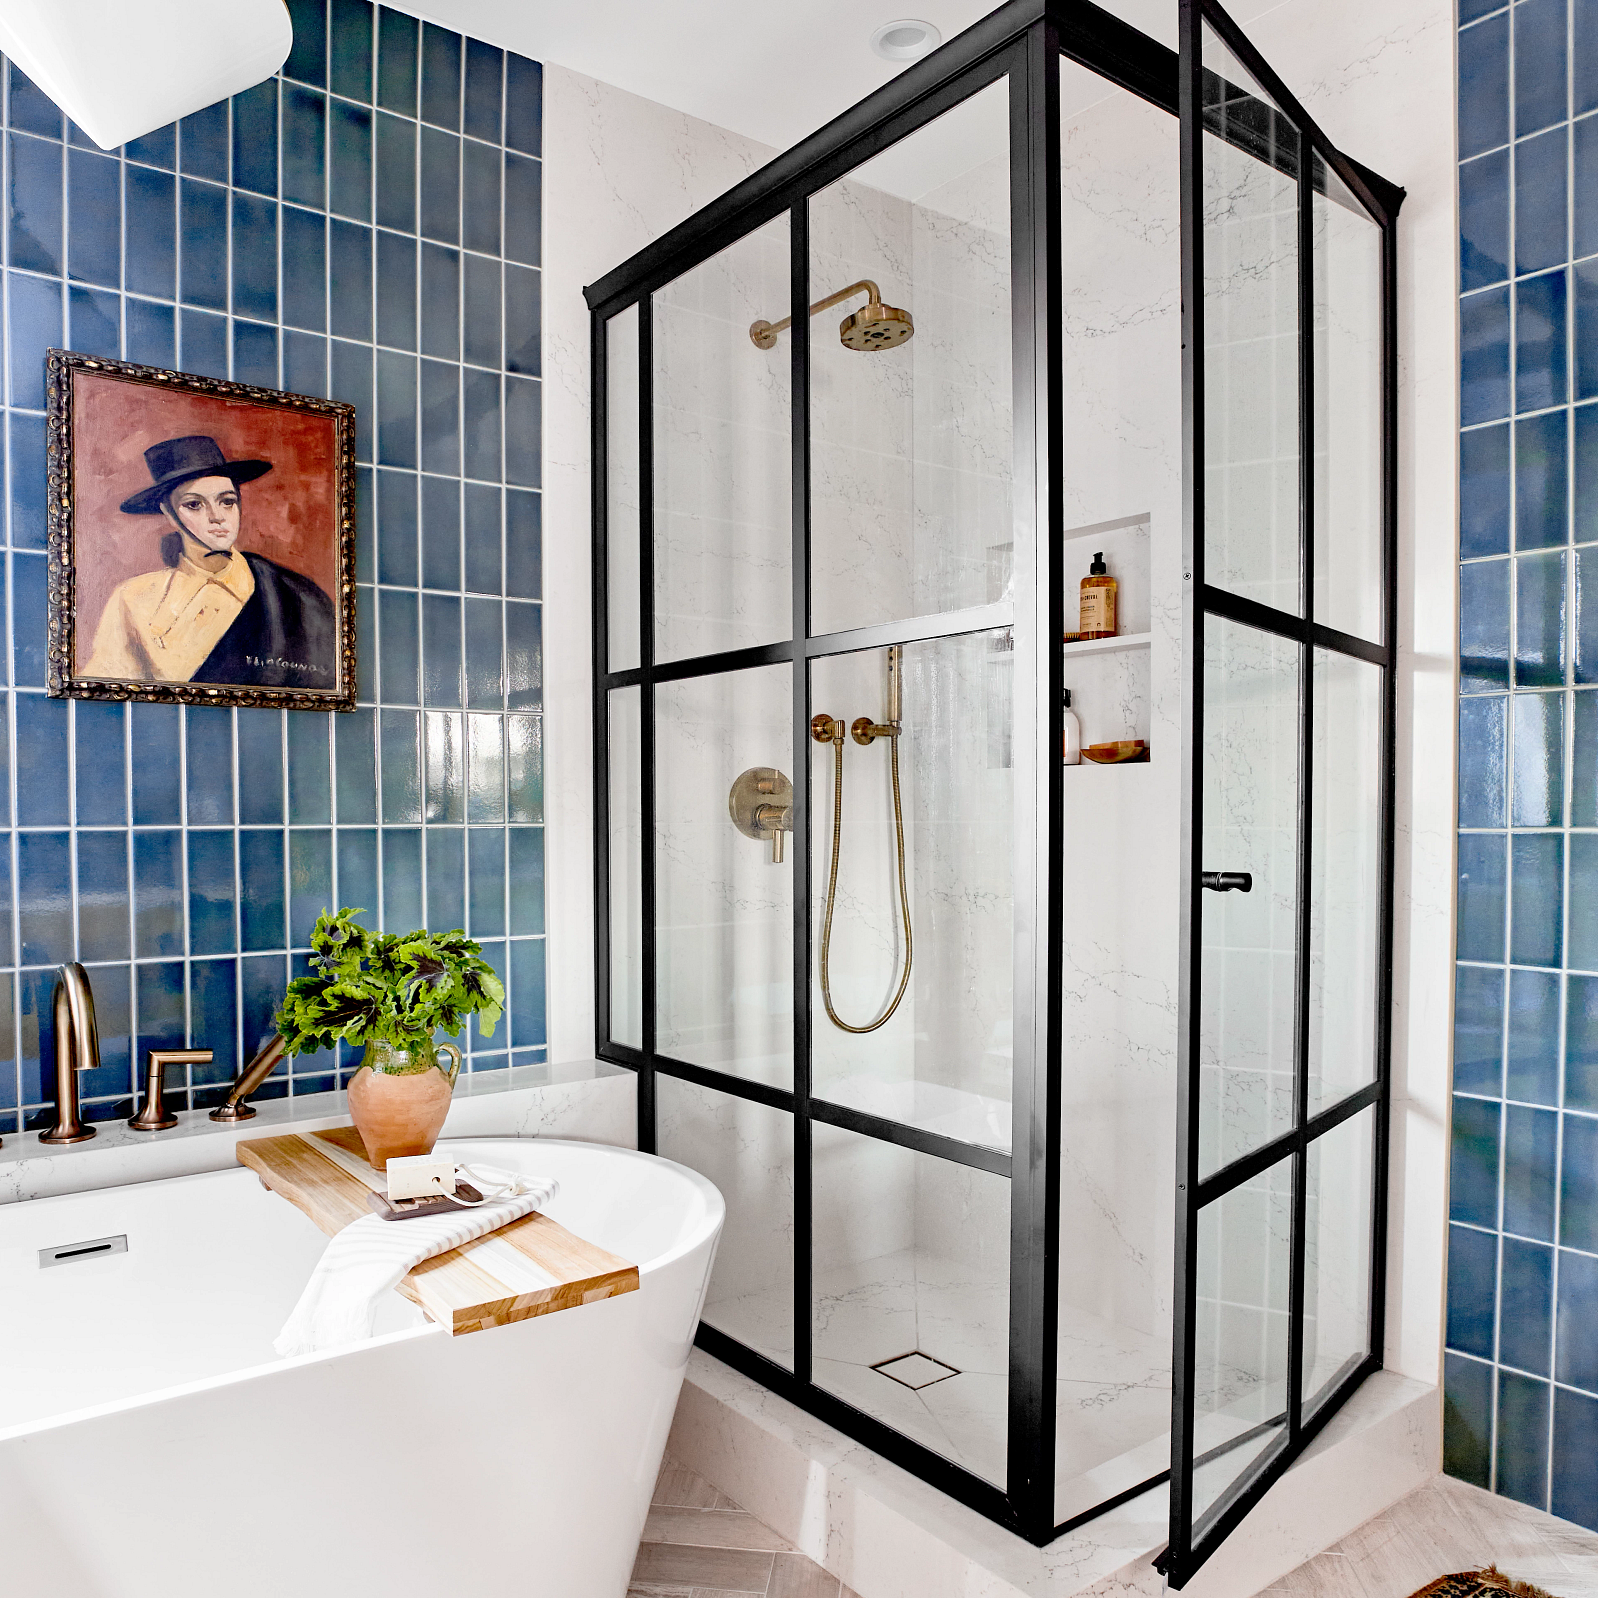 A bathroom with a glass shower  Description automatically generated with low confidence